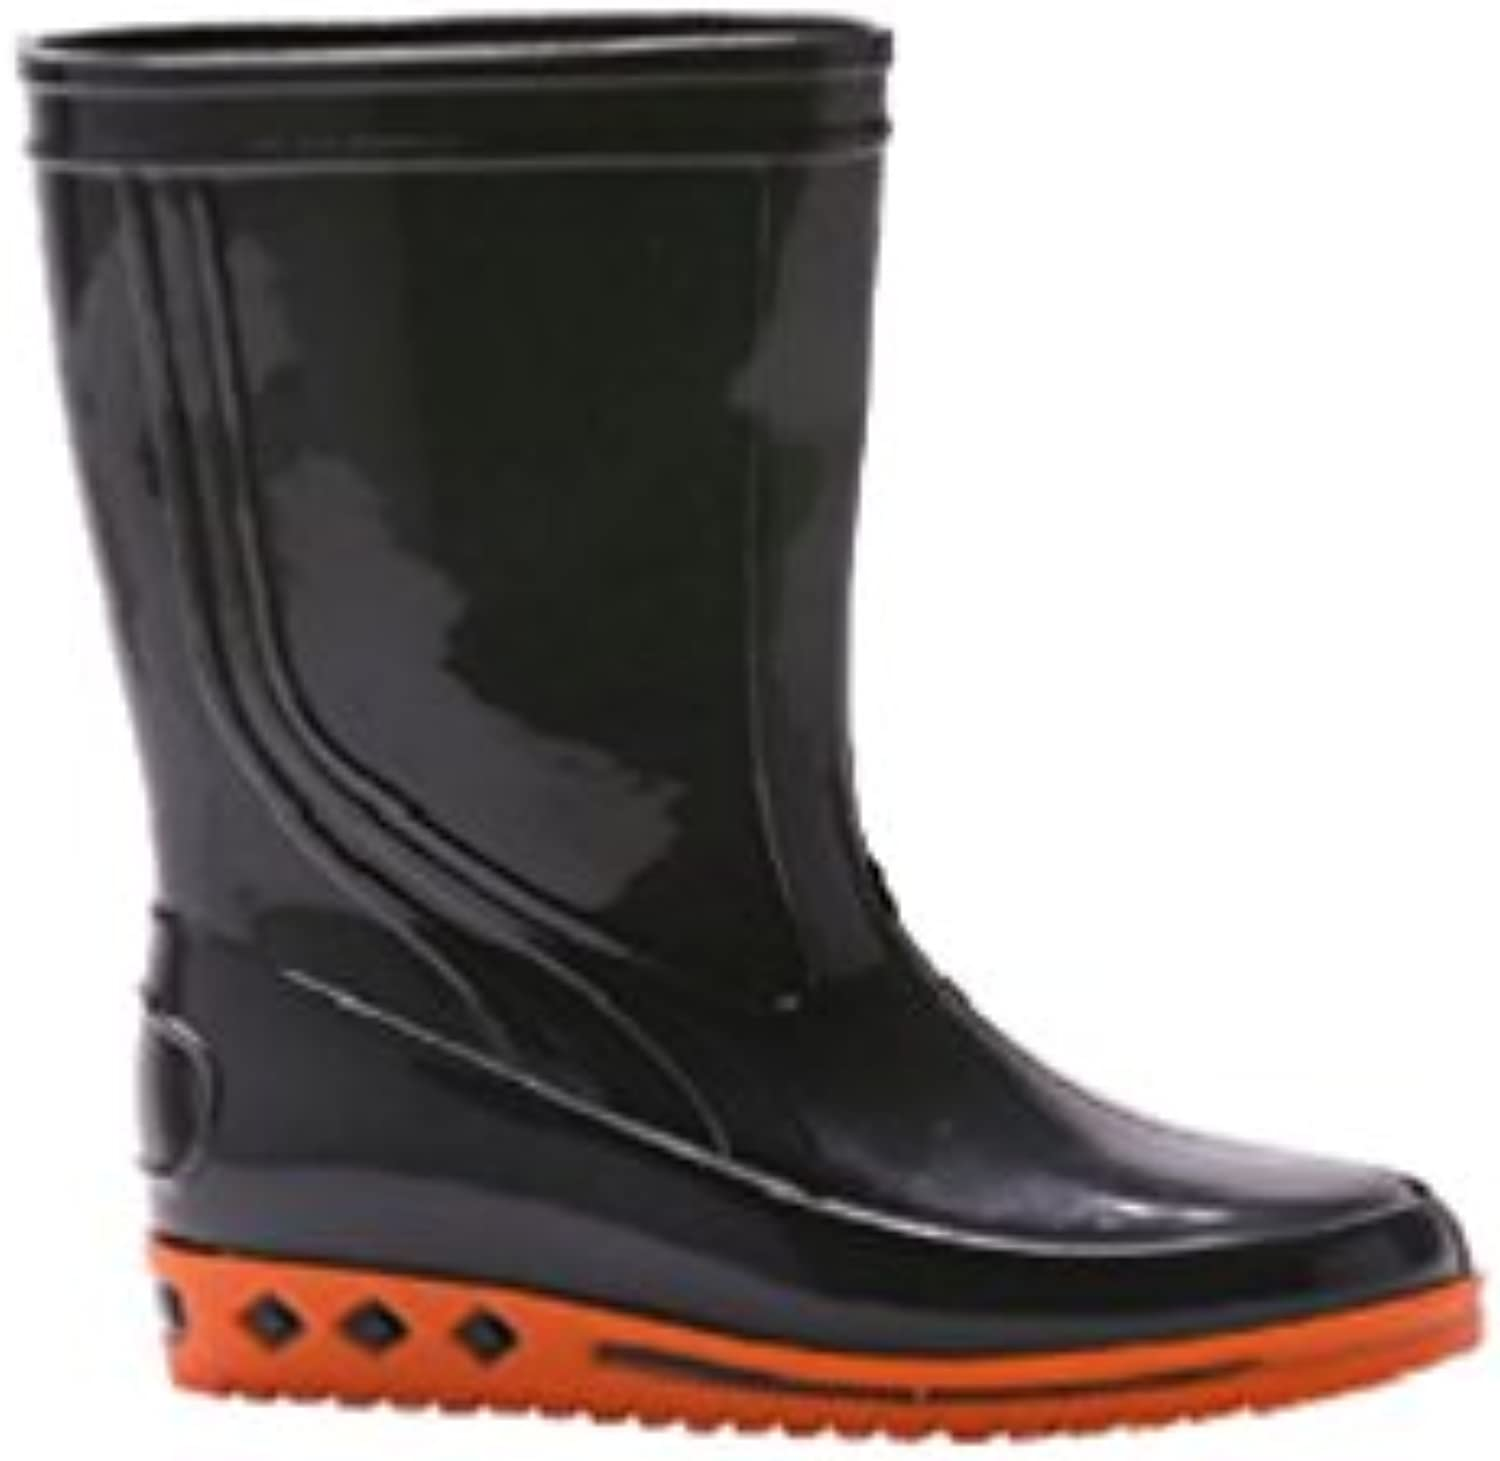 Baudou - Botte enfants de Anthracite/Orange loisirs en PVC BORNEO Anthracite/Orange de 0c6b5a